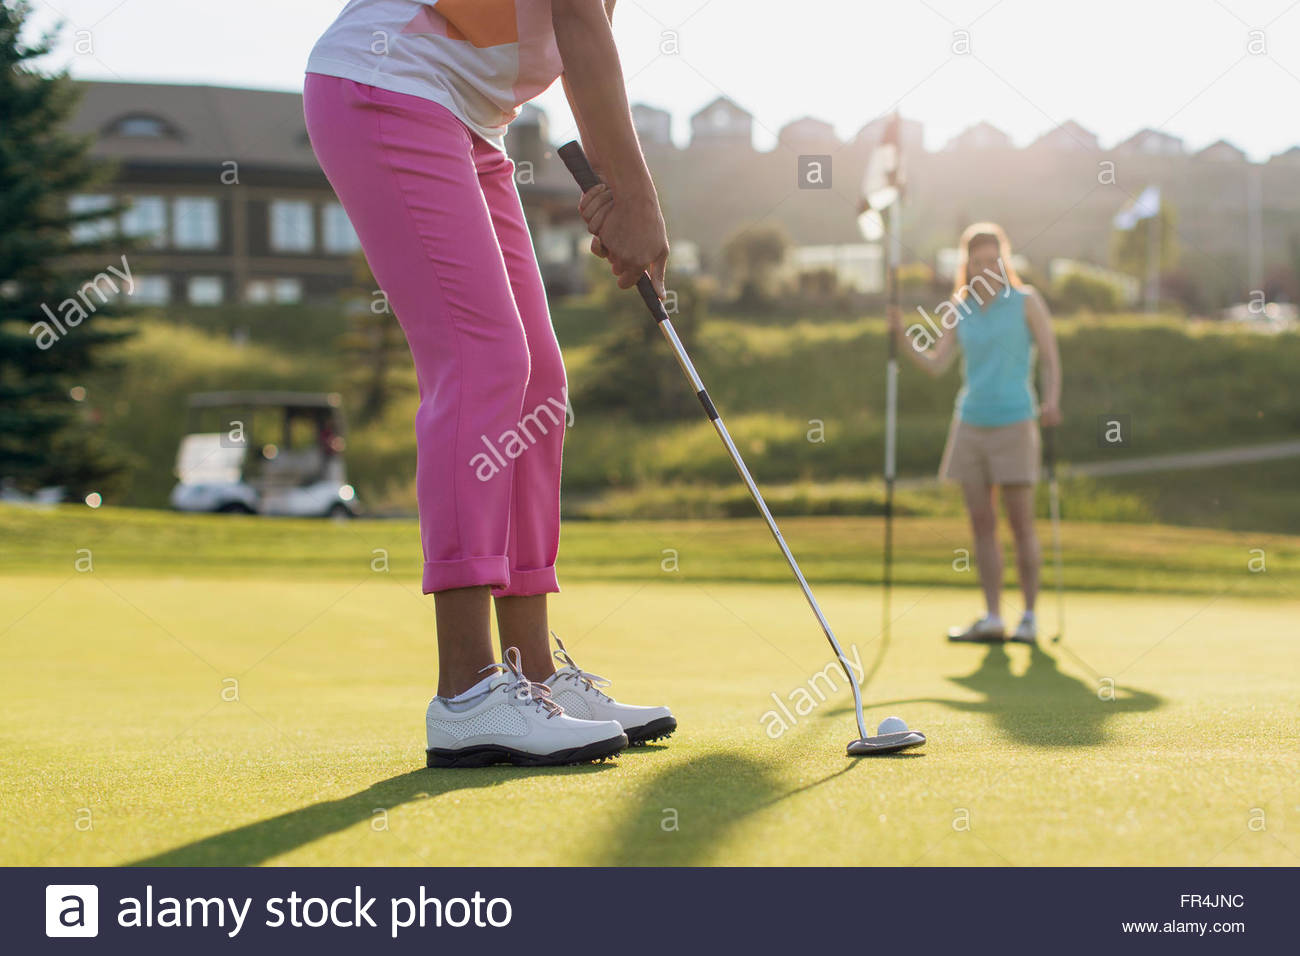 female golfer ready to putt on golf green - Stock Image